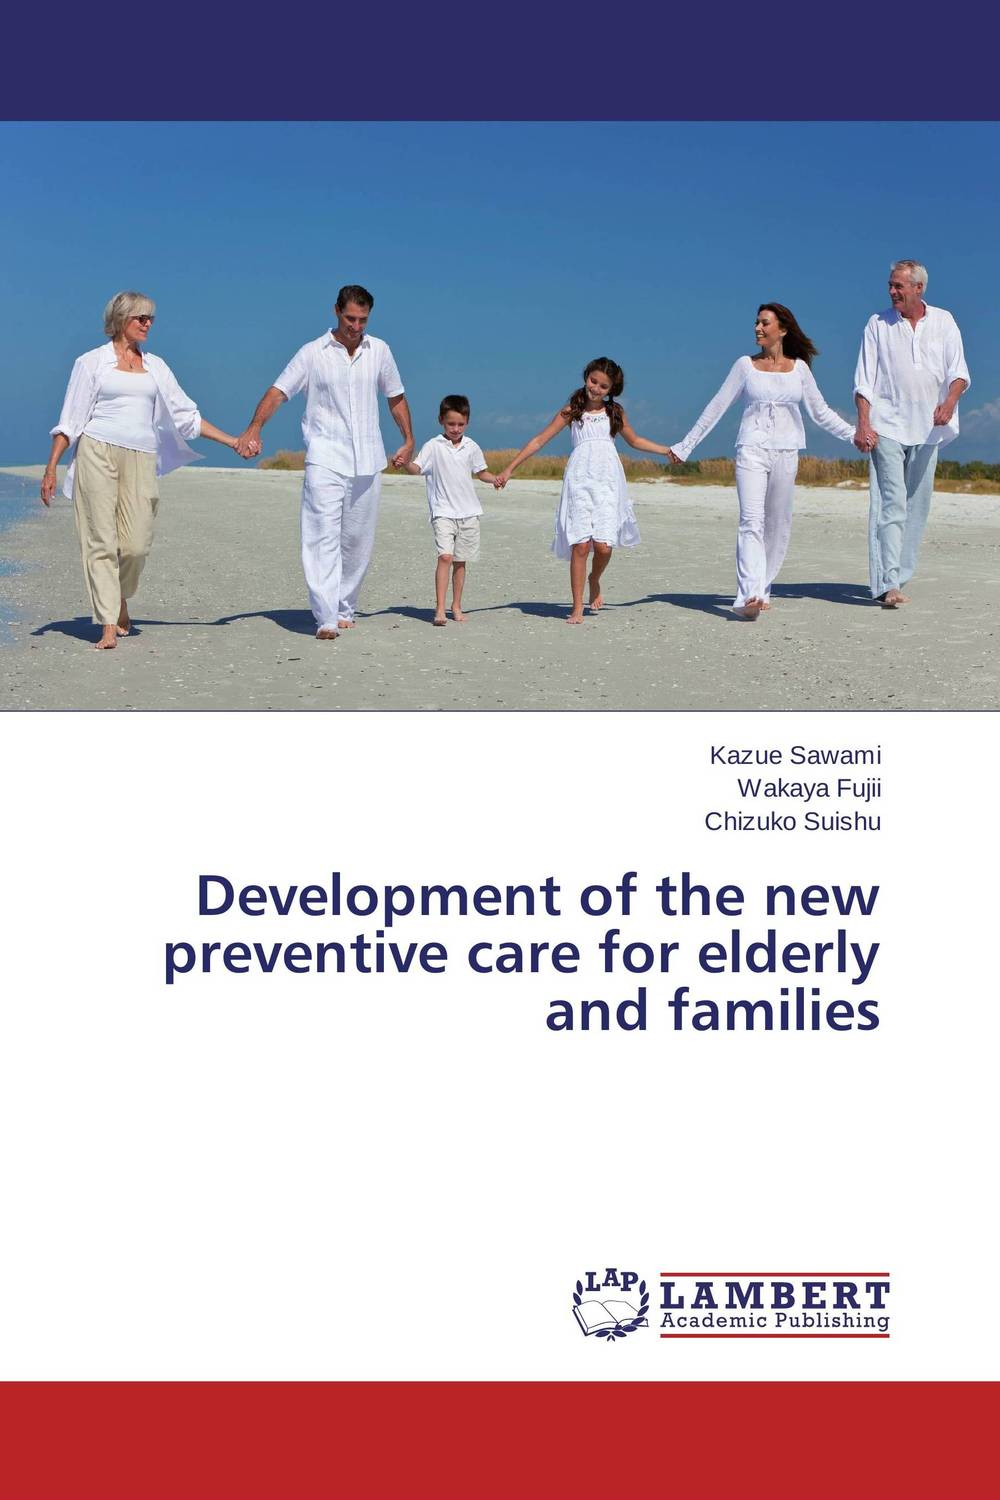 Development of the new preventive care for elderly and families family caregiving in the new normal